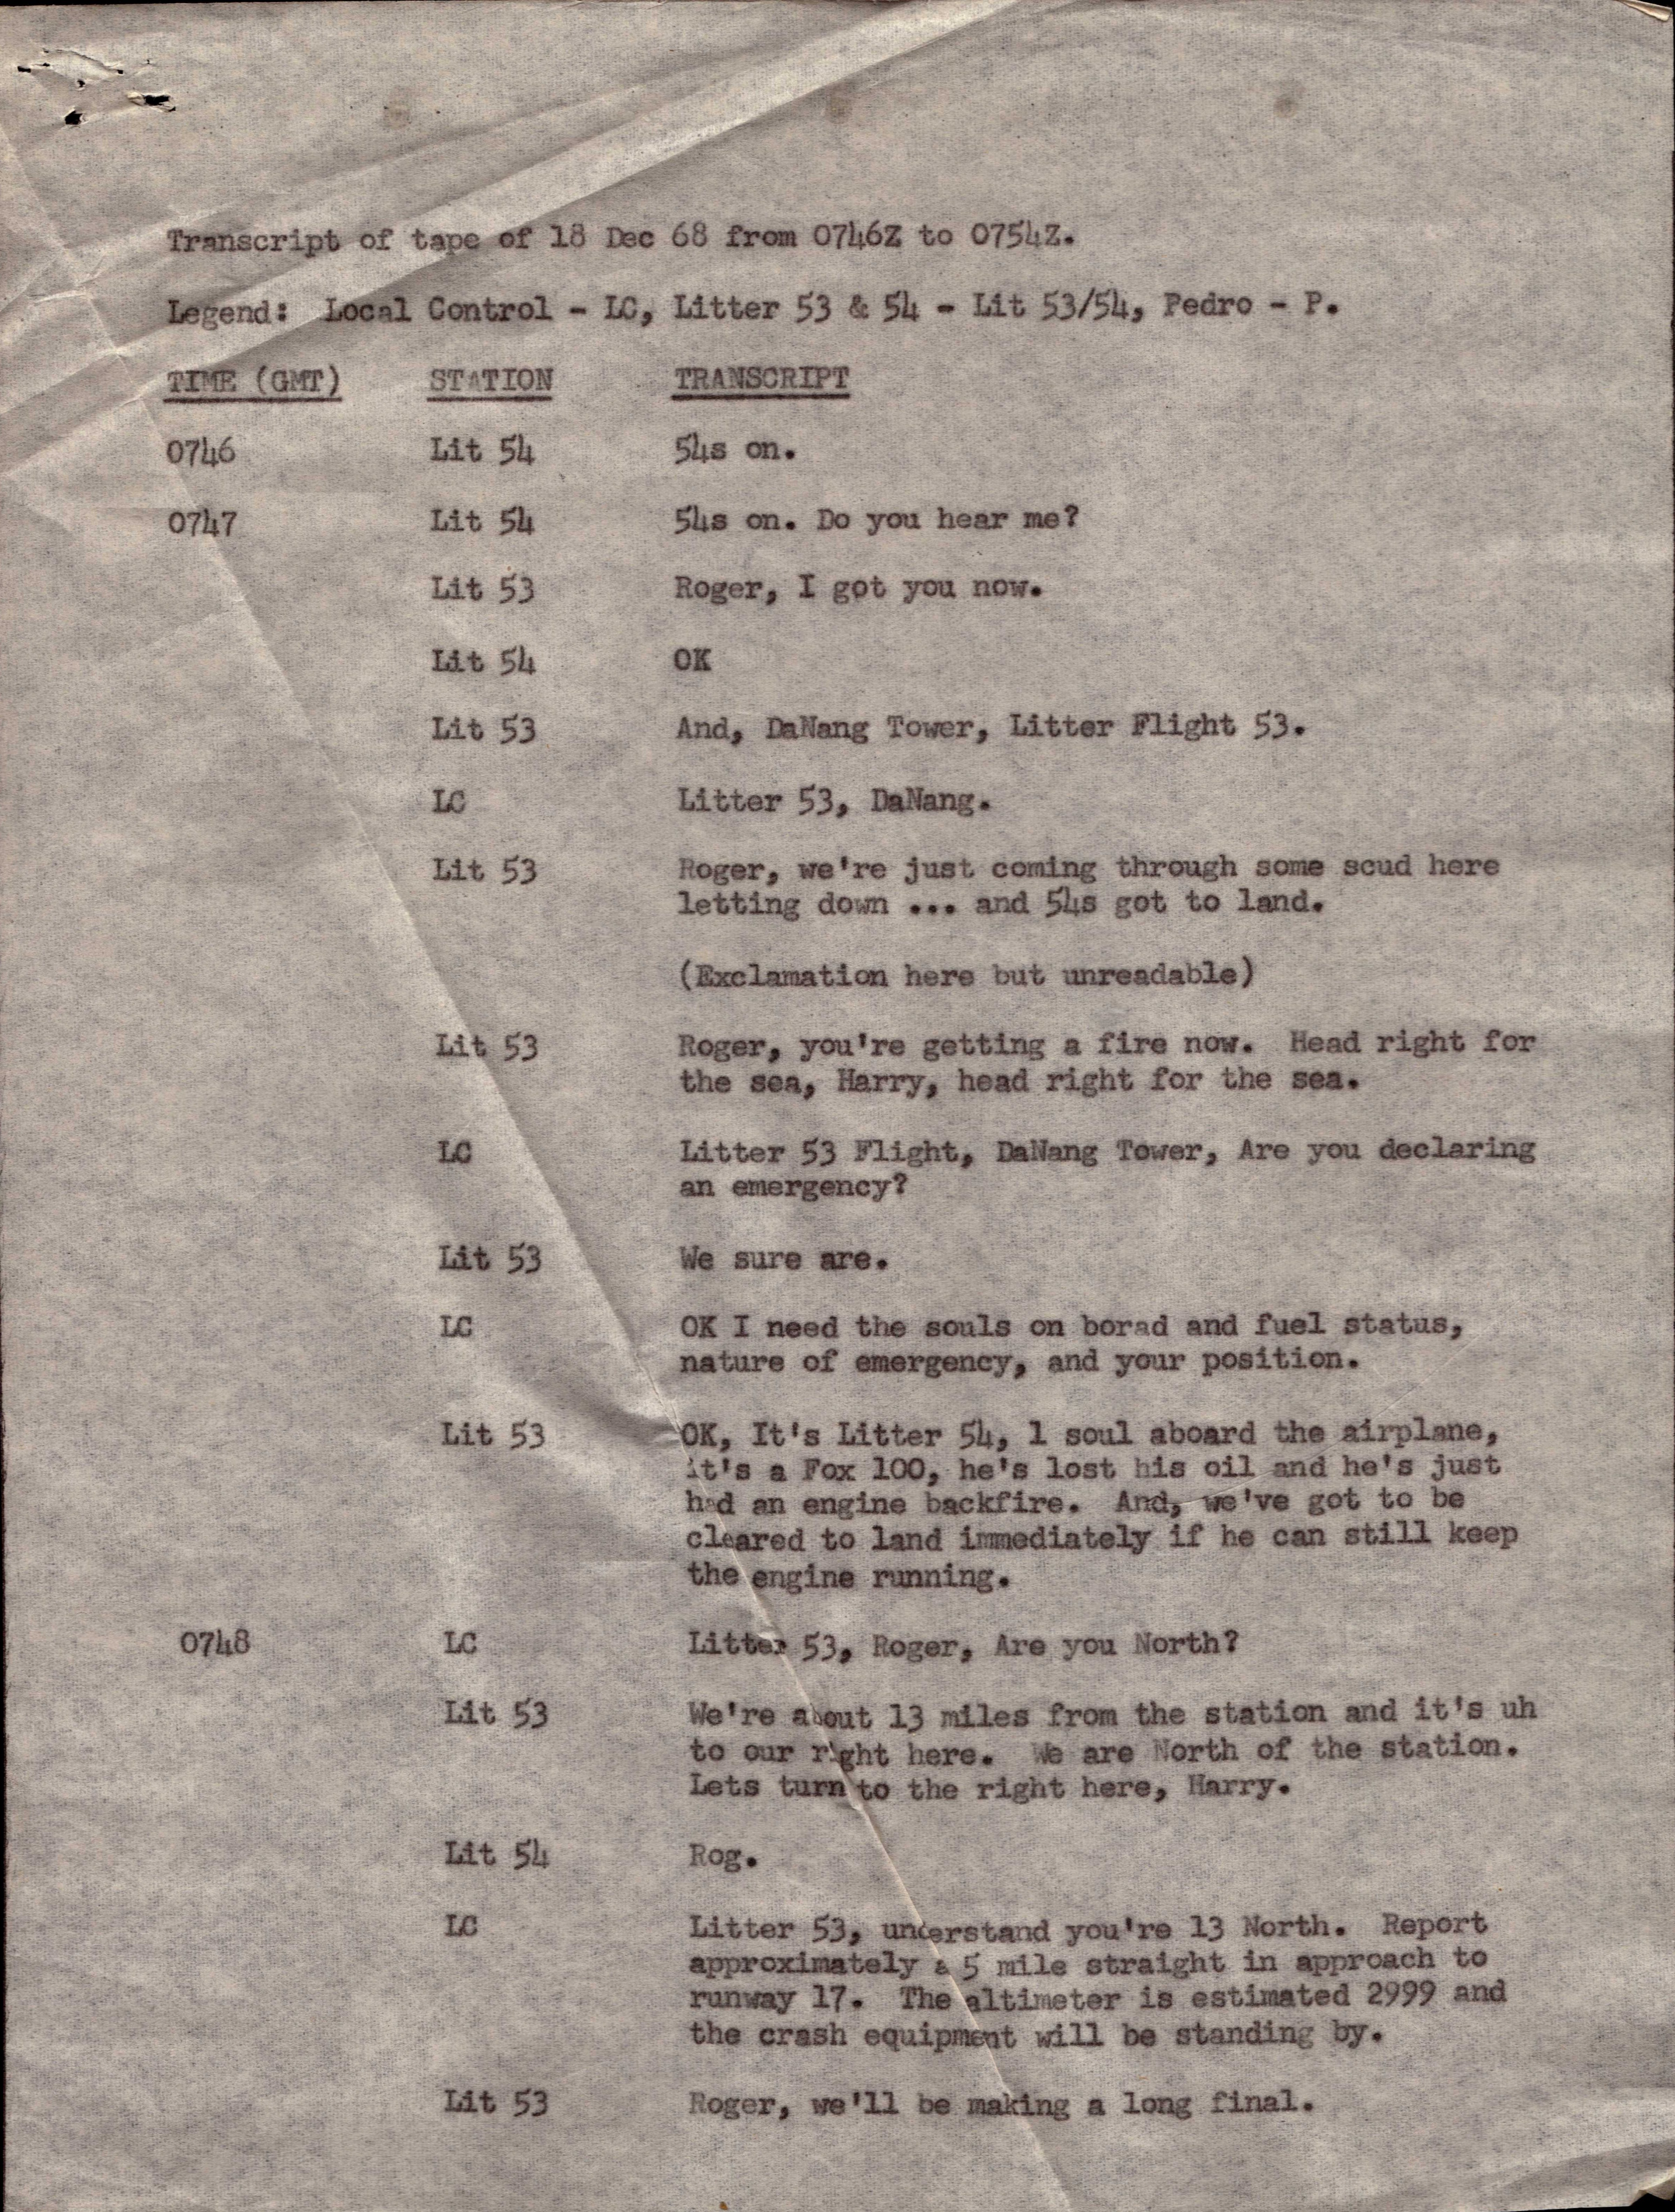 harry-roberts-plane-crash-transcript-p-1